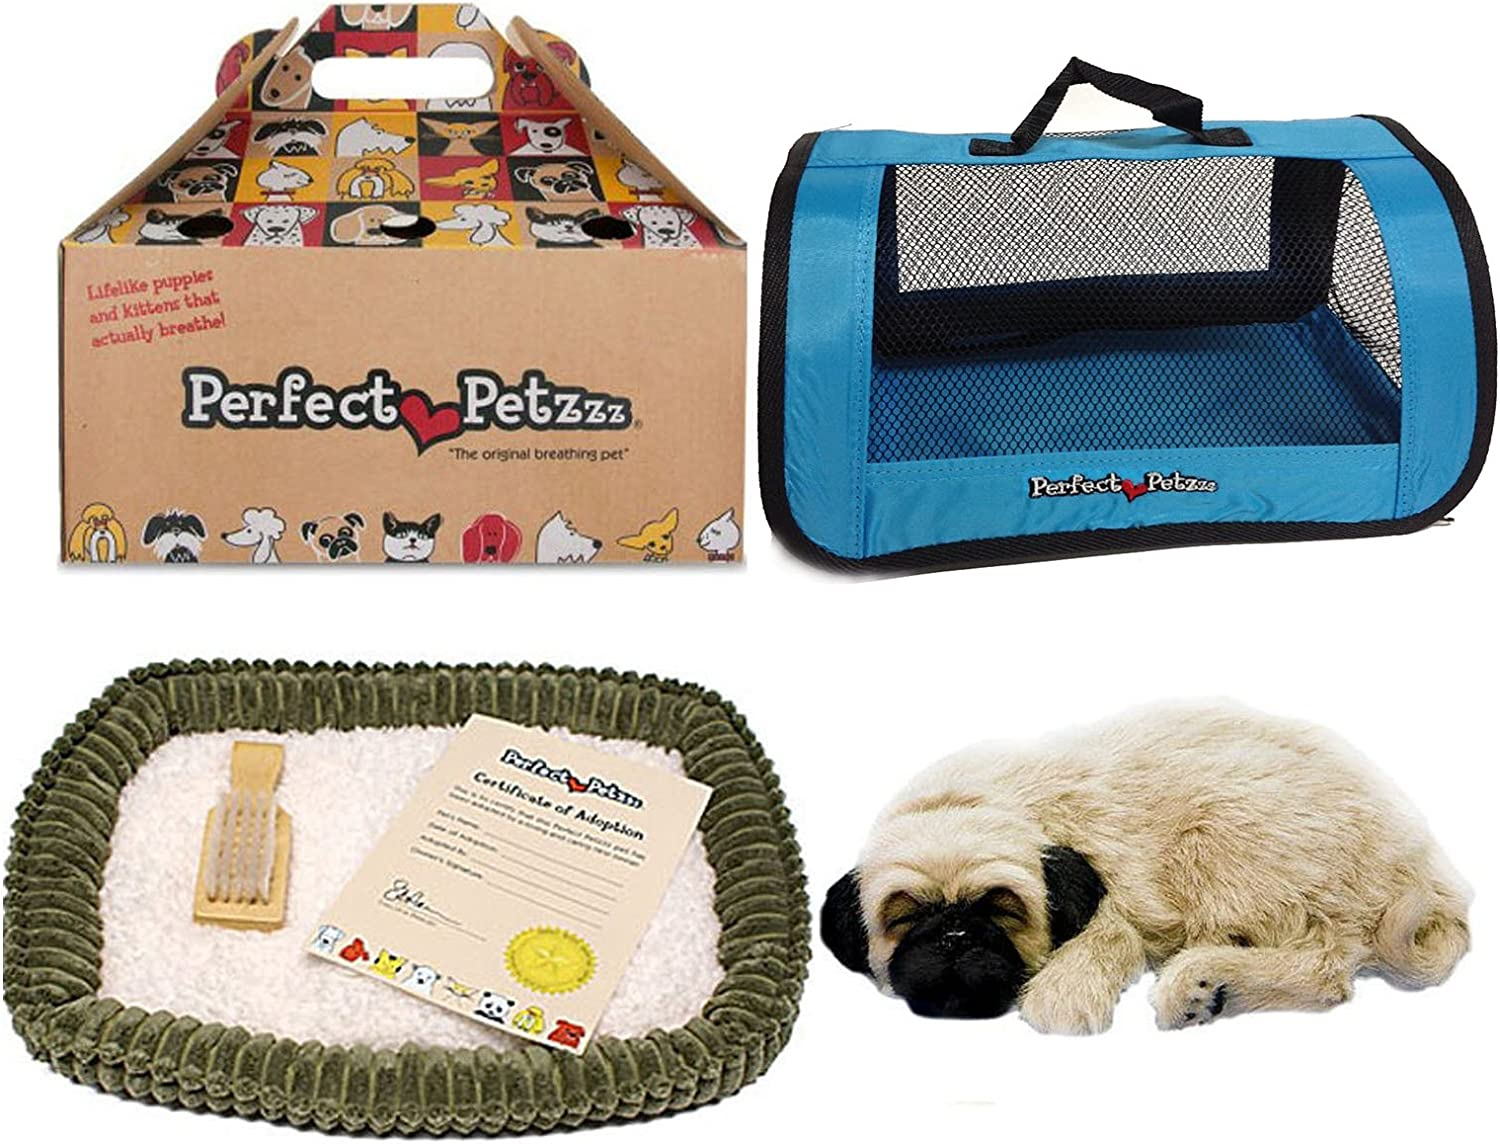 Perfect Petzzz Huggable Pug Puppy with BlueTote For Plush Breathing Pet